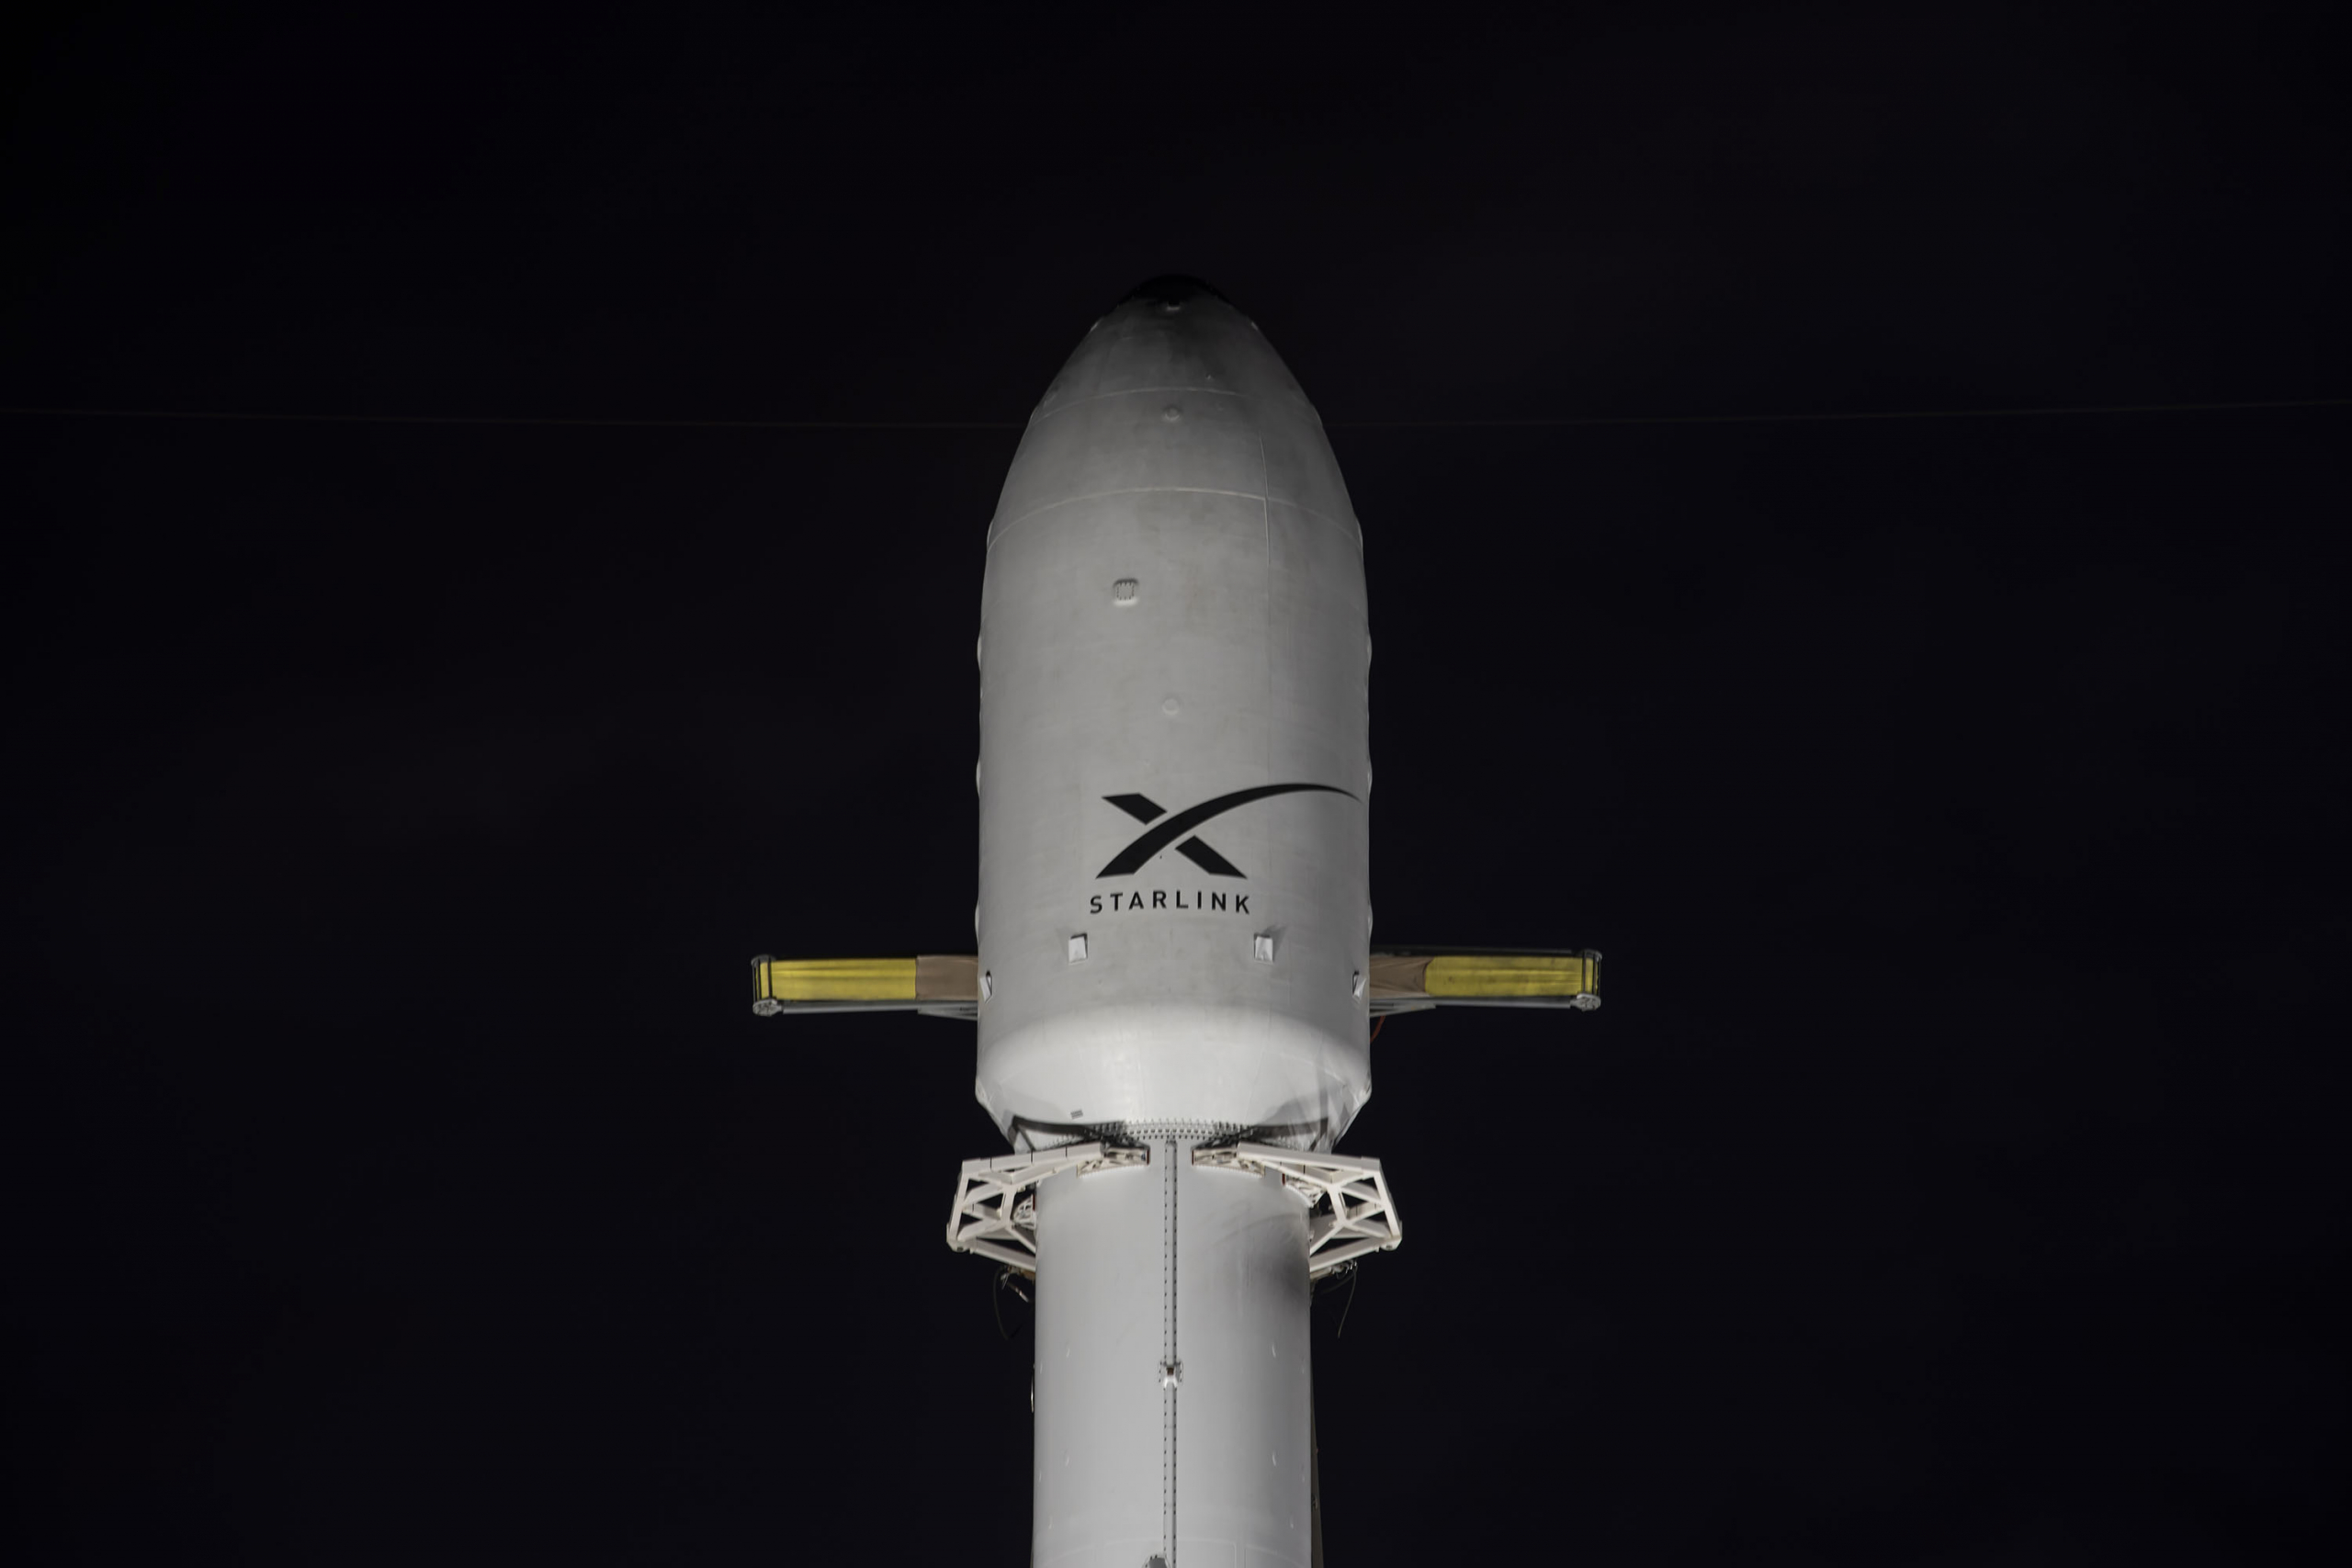 SpaceX ready for Falcon 9 launch with next Starlink mission – NASASpaceflight.com